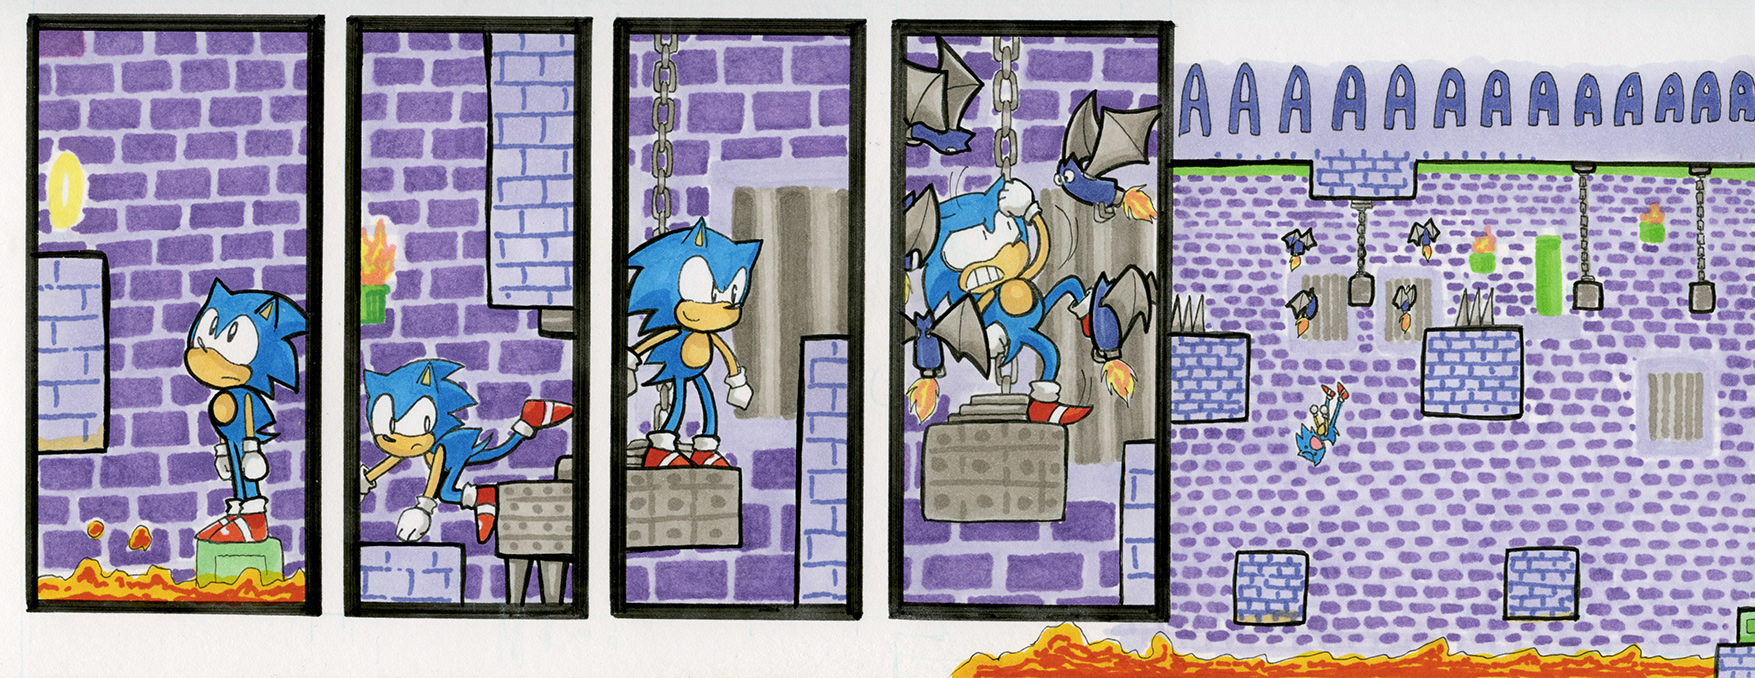 Sonic the Hedgehog 1: Marble Zone, Act 2